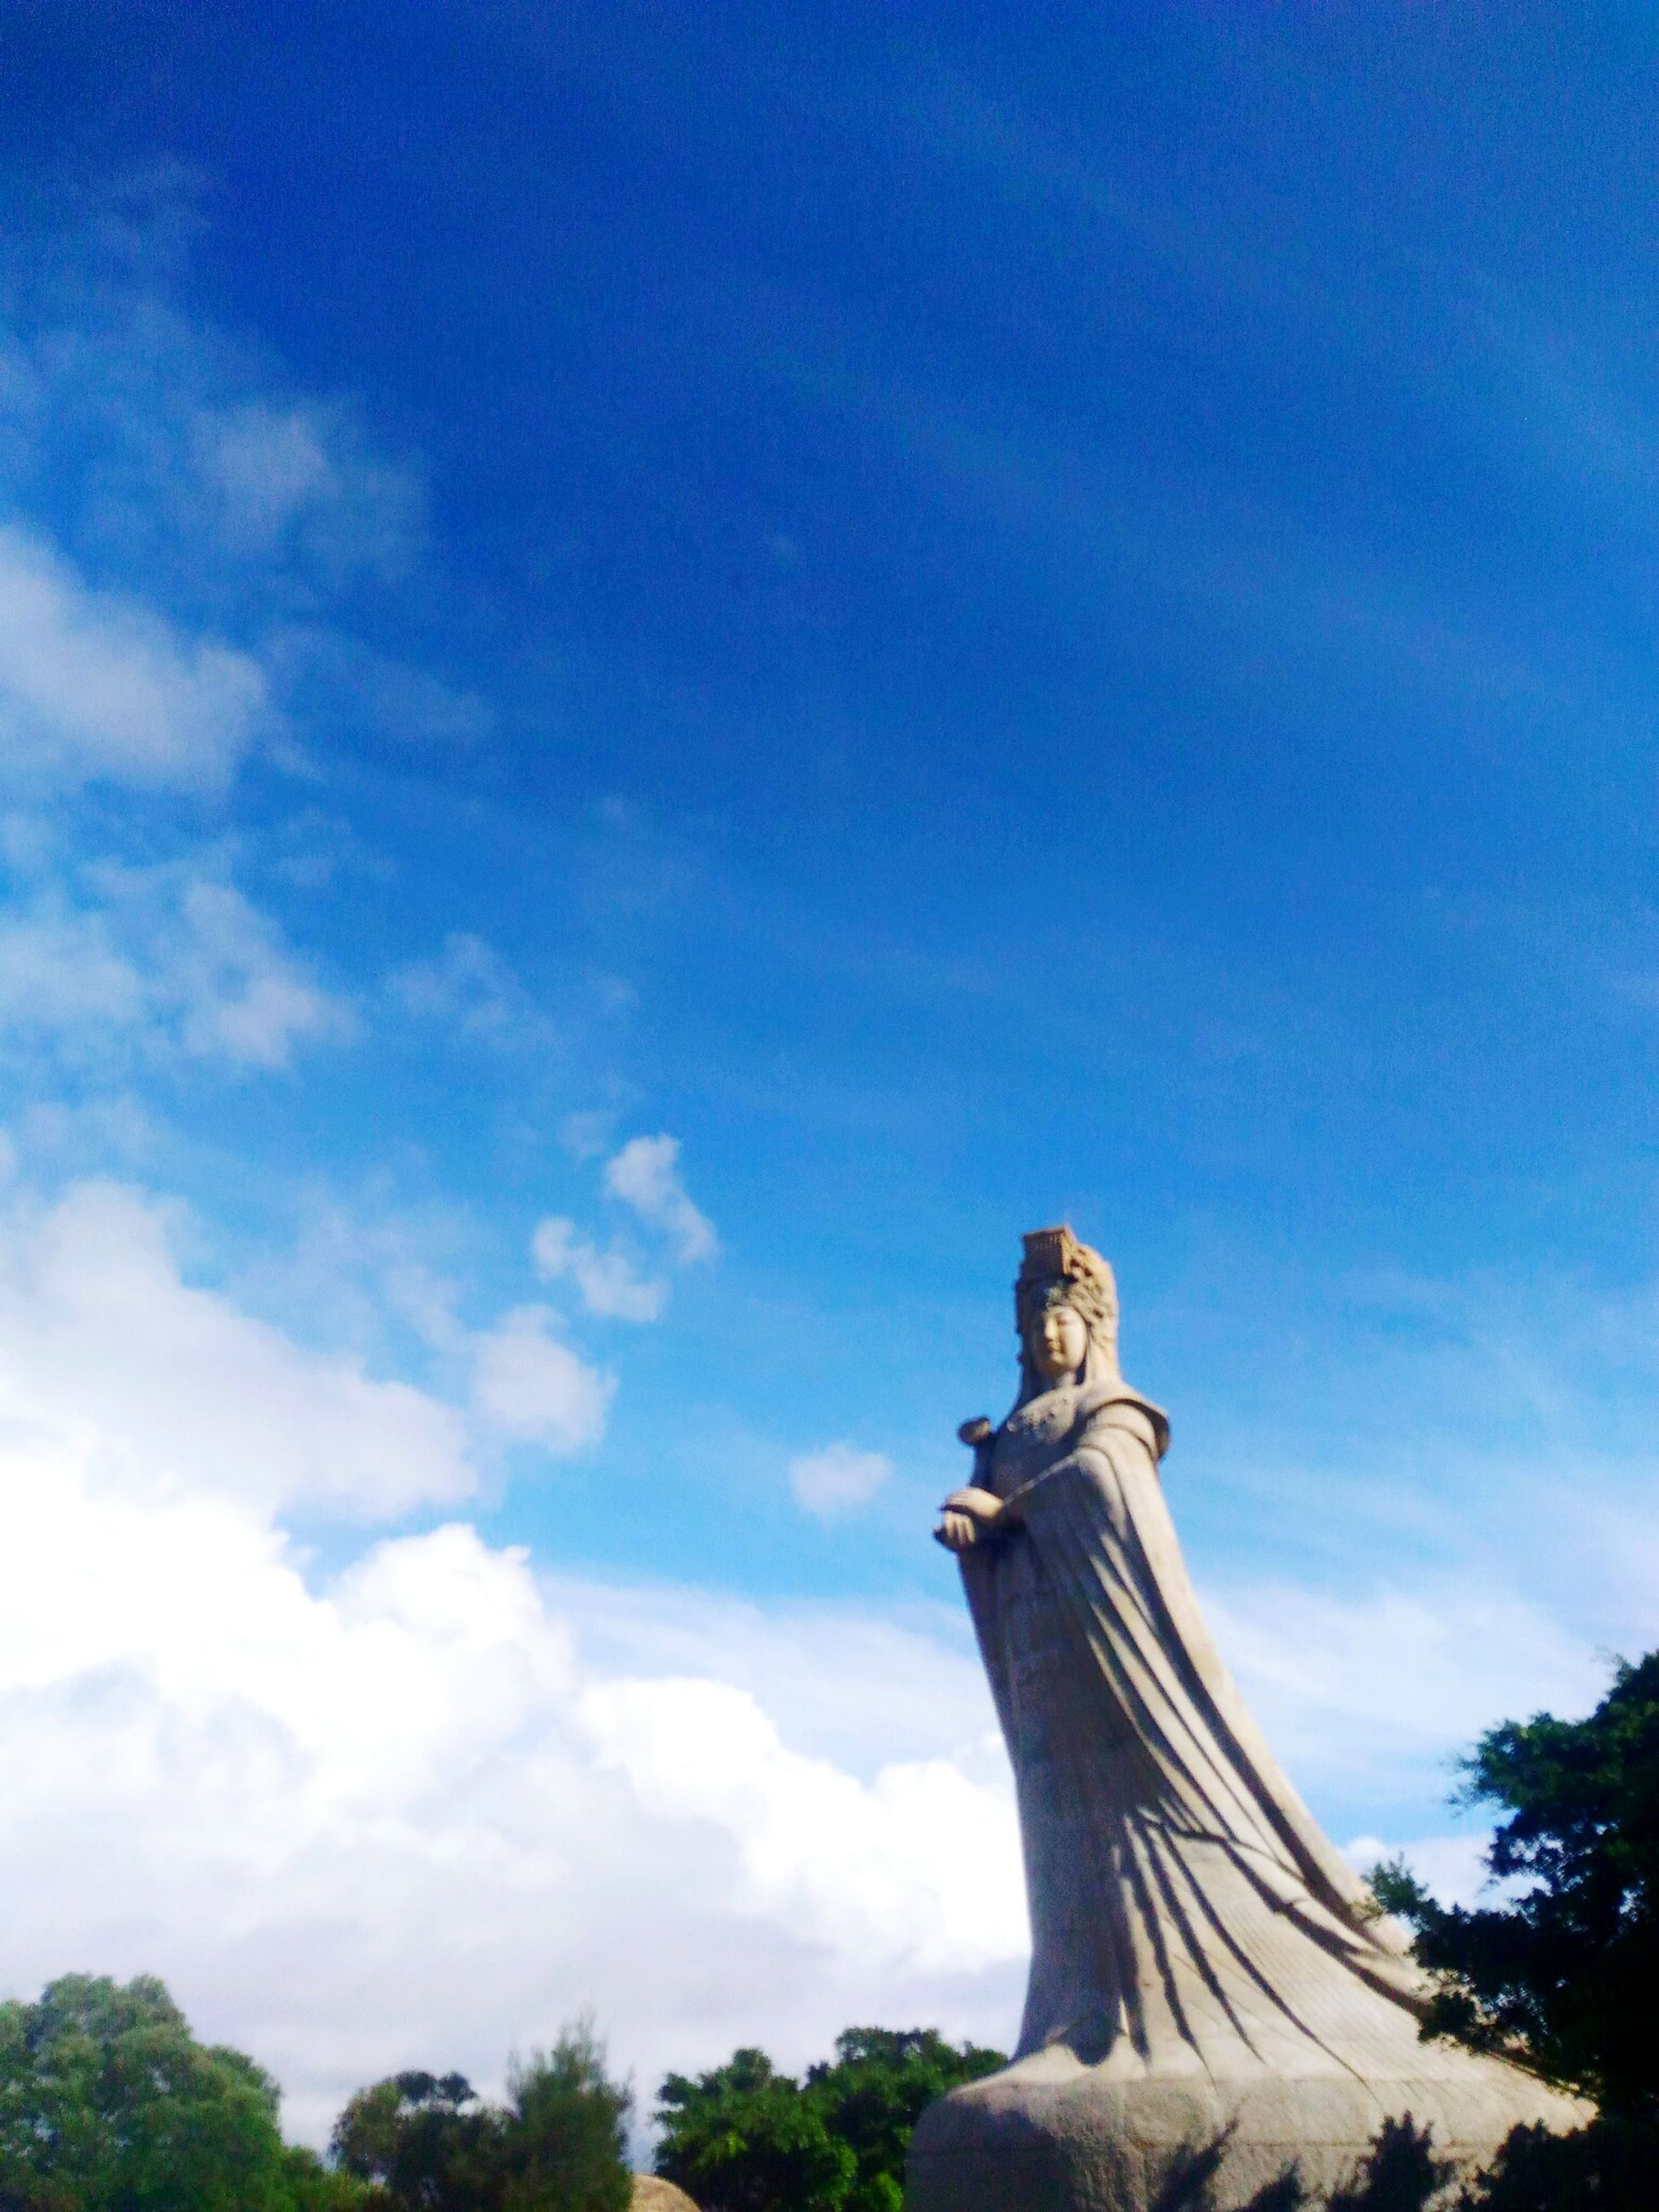 statue, sculpture, human representation, blue, art and craft, low angle view, sky, art, cloud - sky, cloud, day, outdoors, monument, creativity, memories, pedestal, no people, history